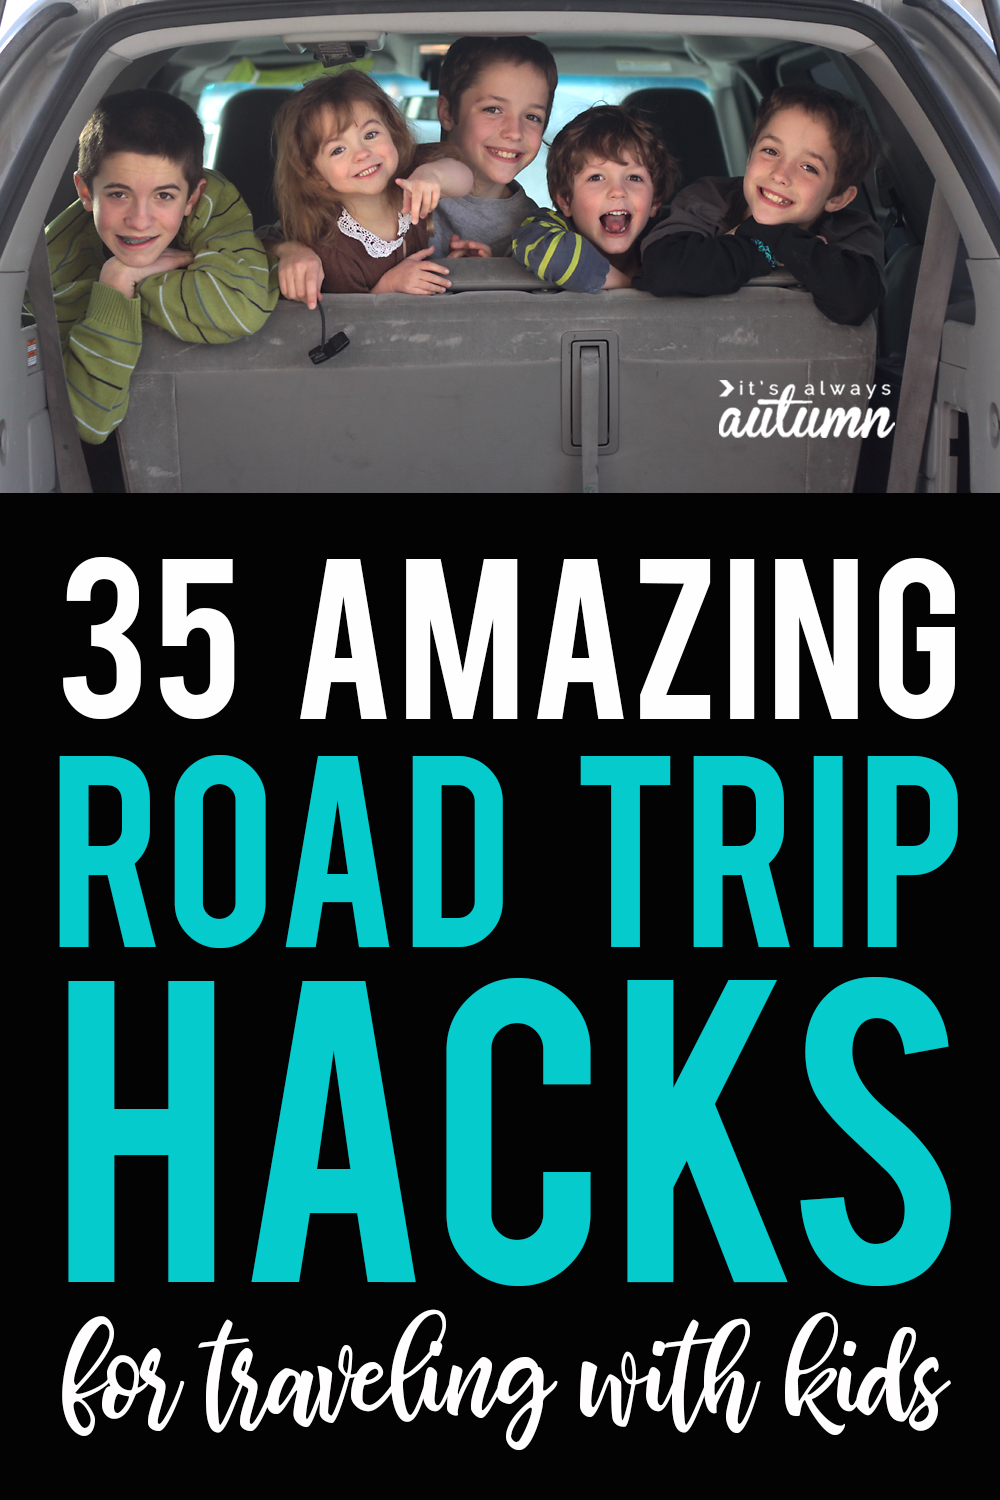 Over 35 of the best hacks for road trips with kids.